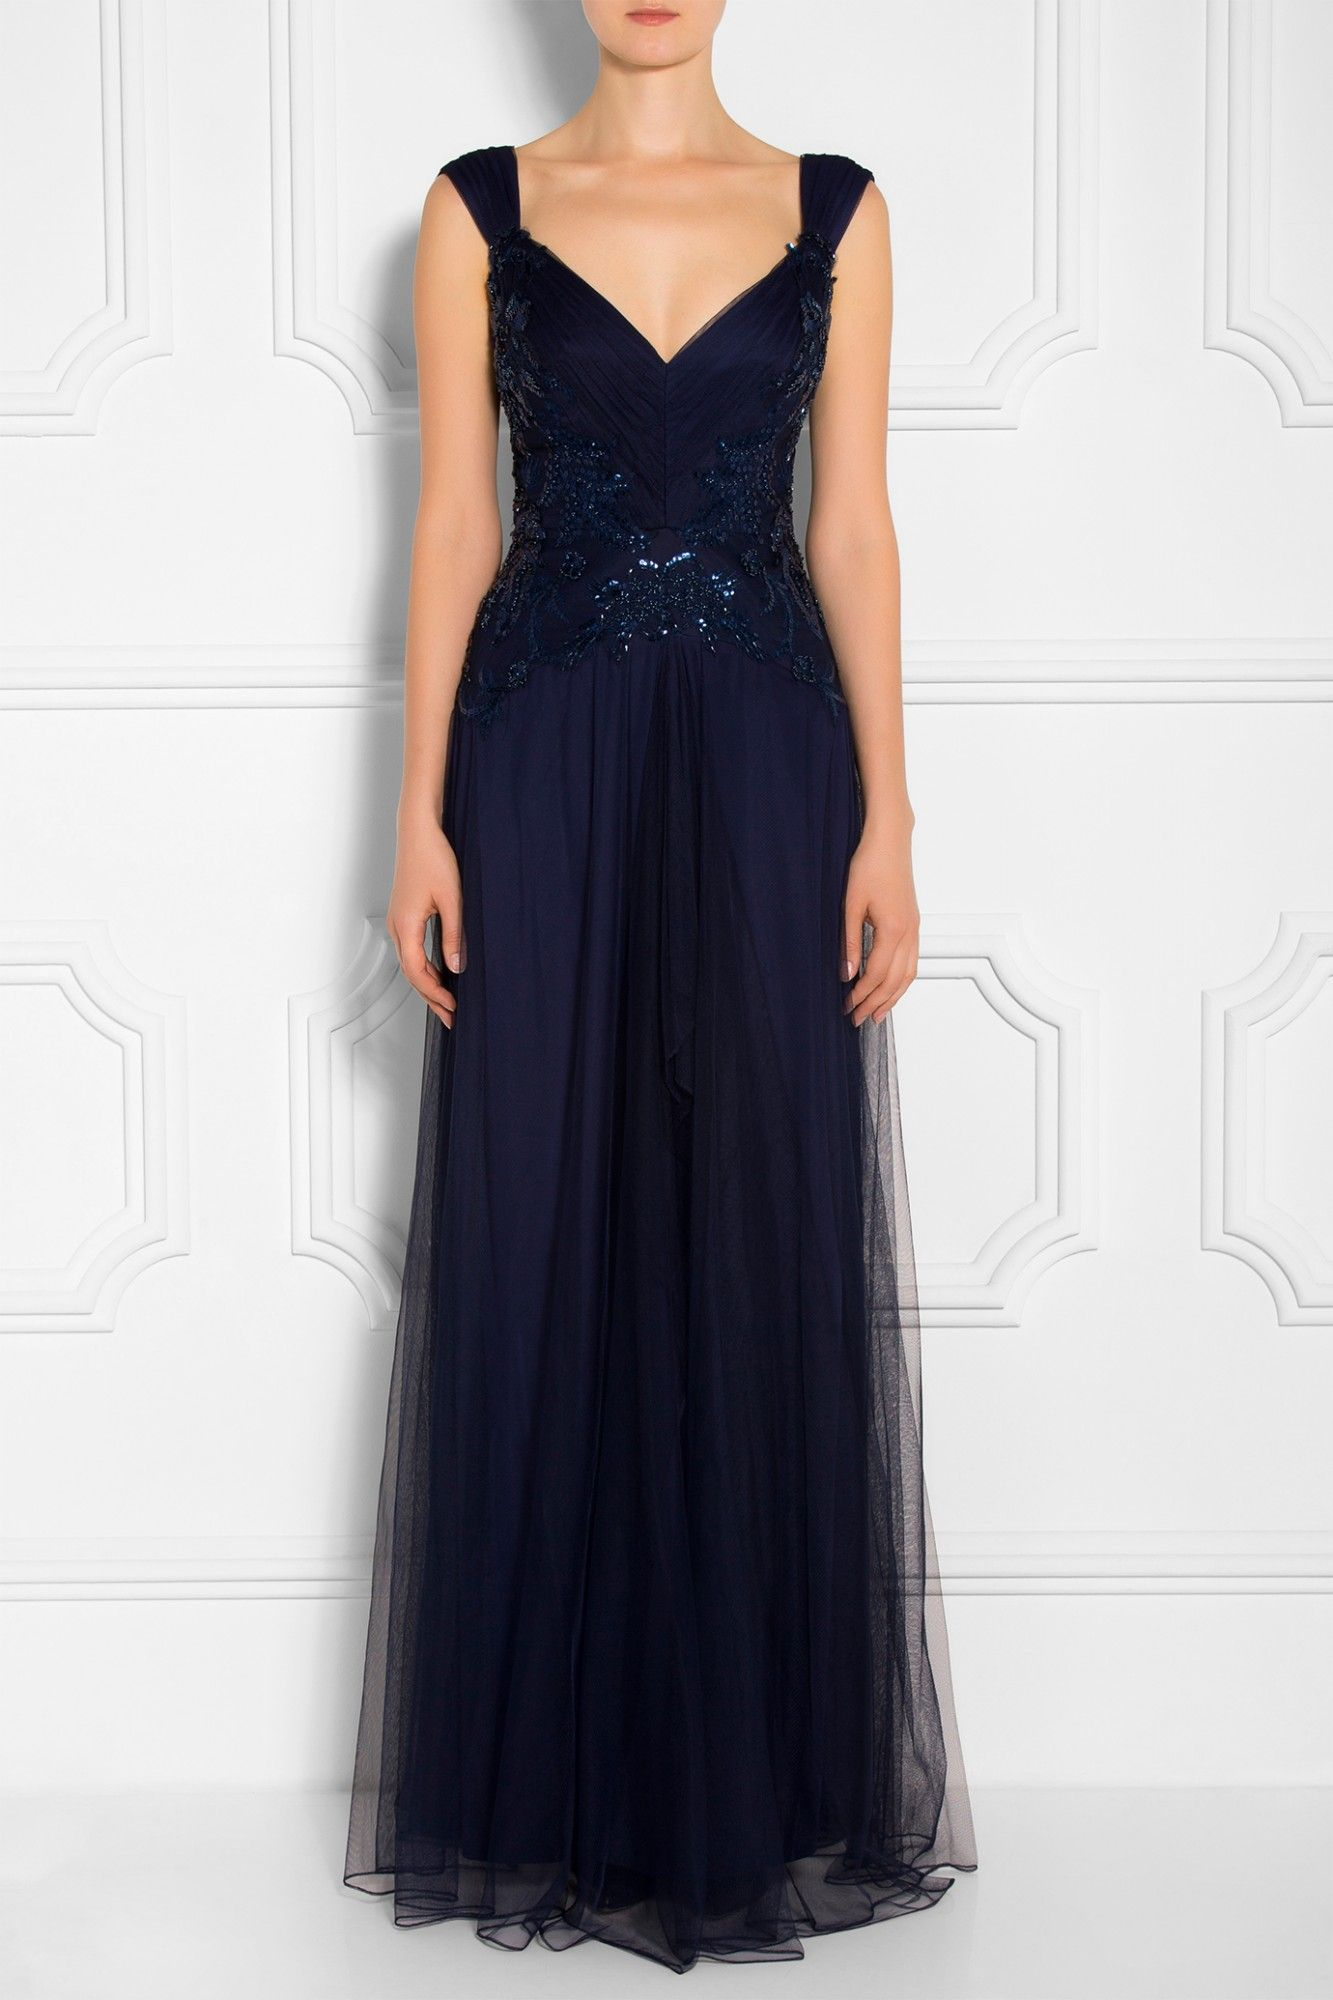 Embellished gown formal gowns pinterest marchesa gowns and